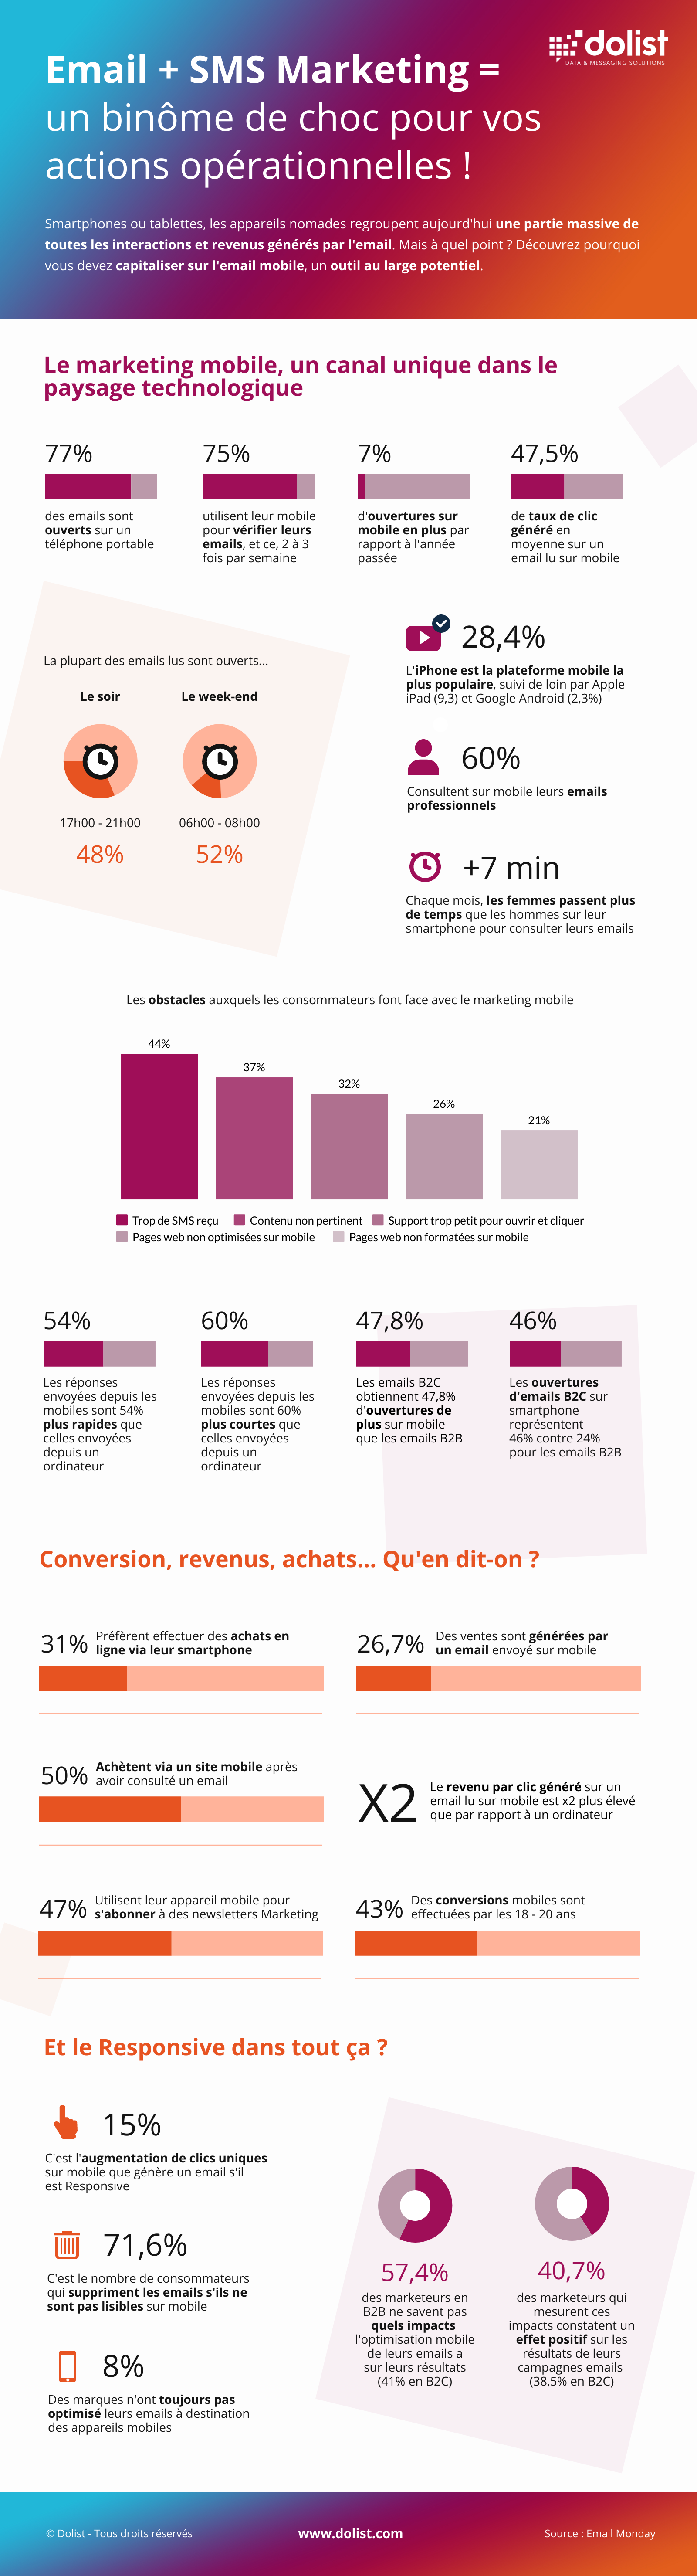 Infographie Email & SMS Marketing